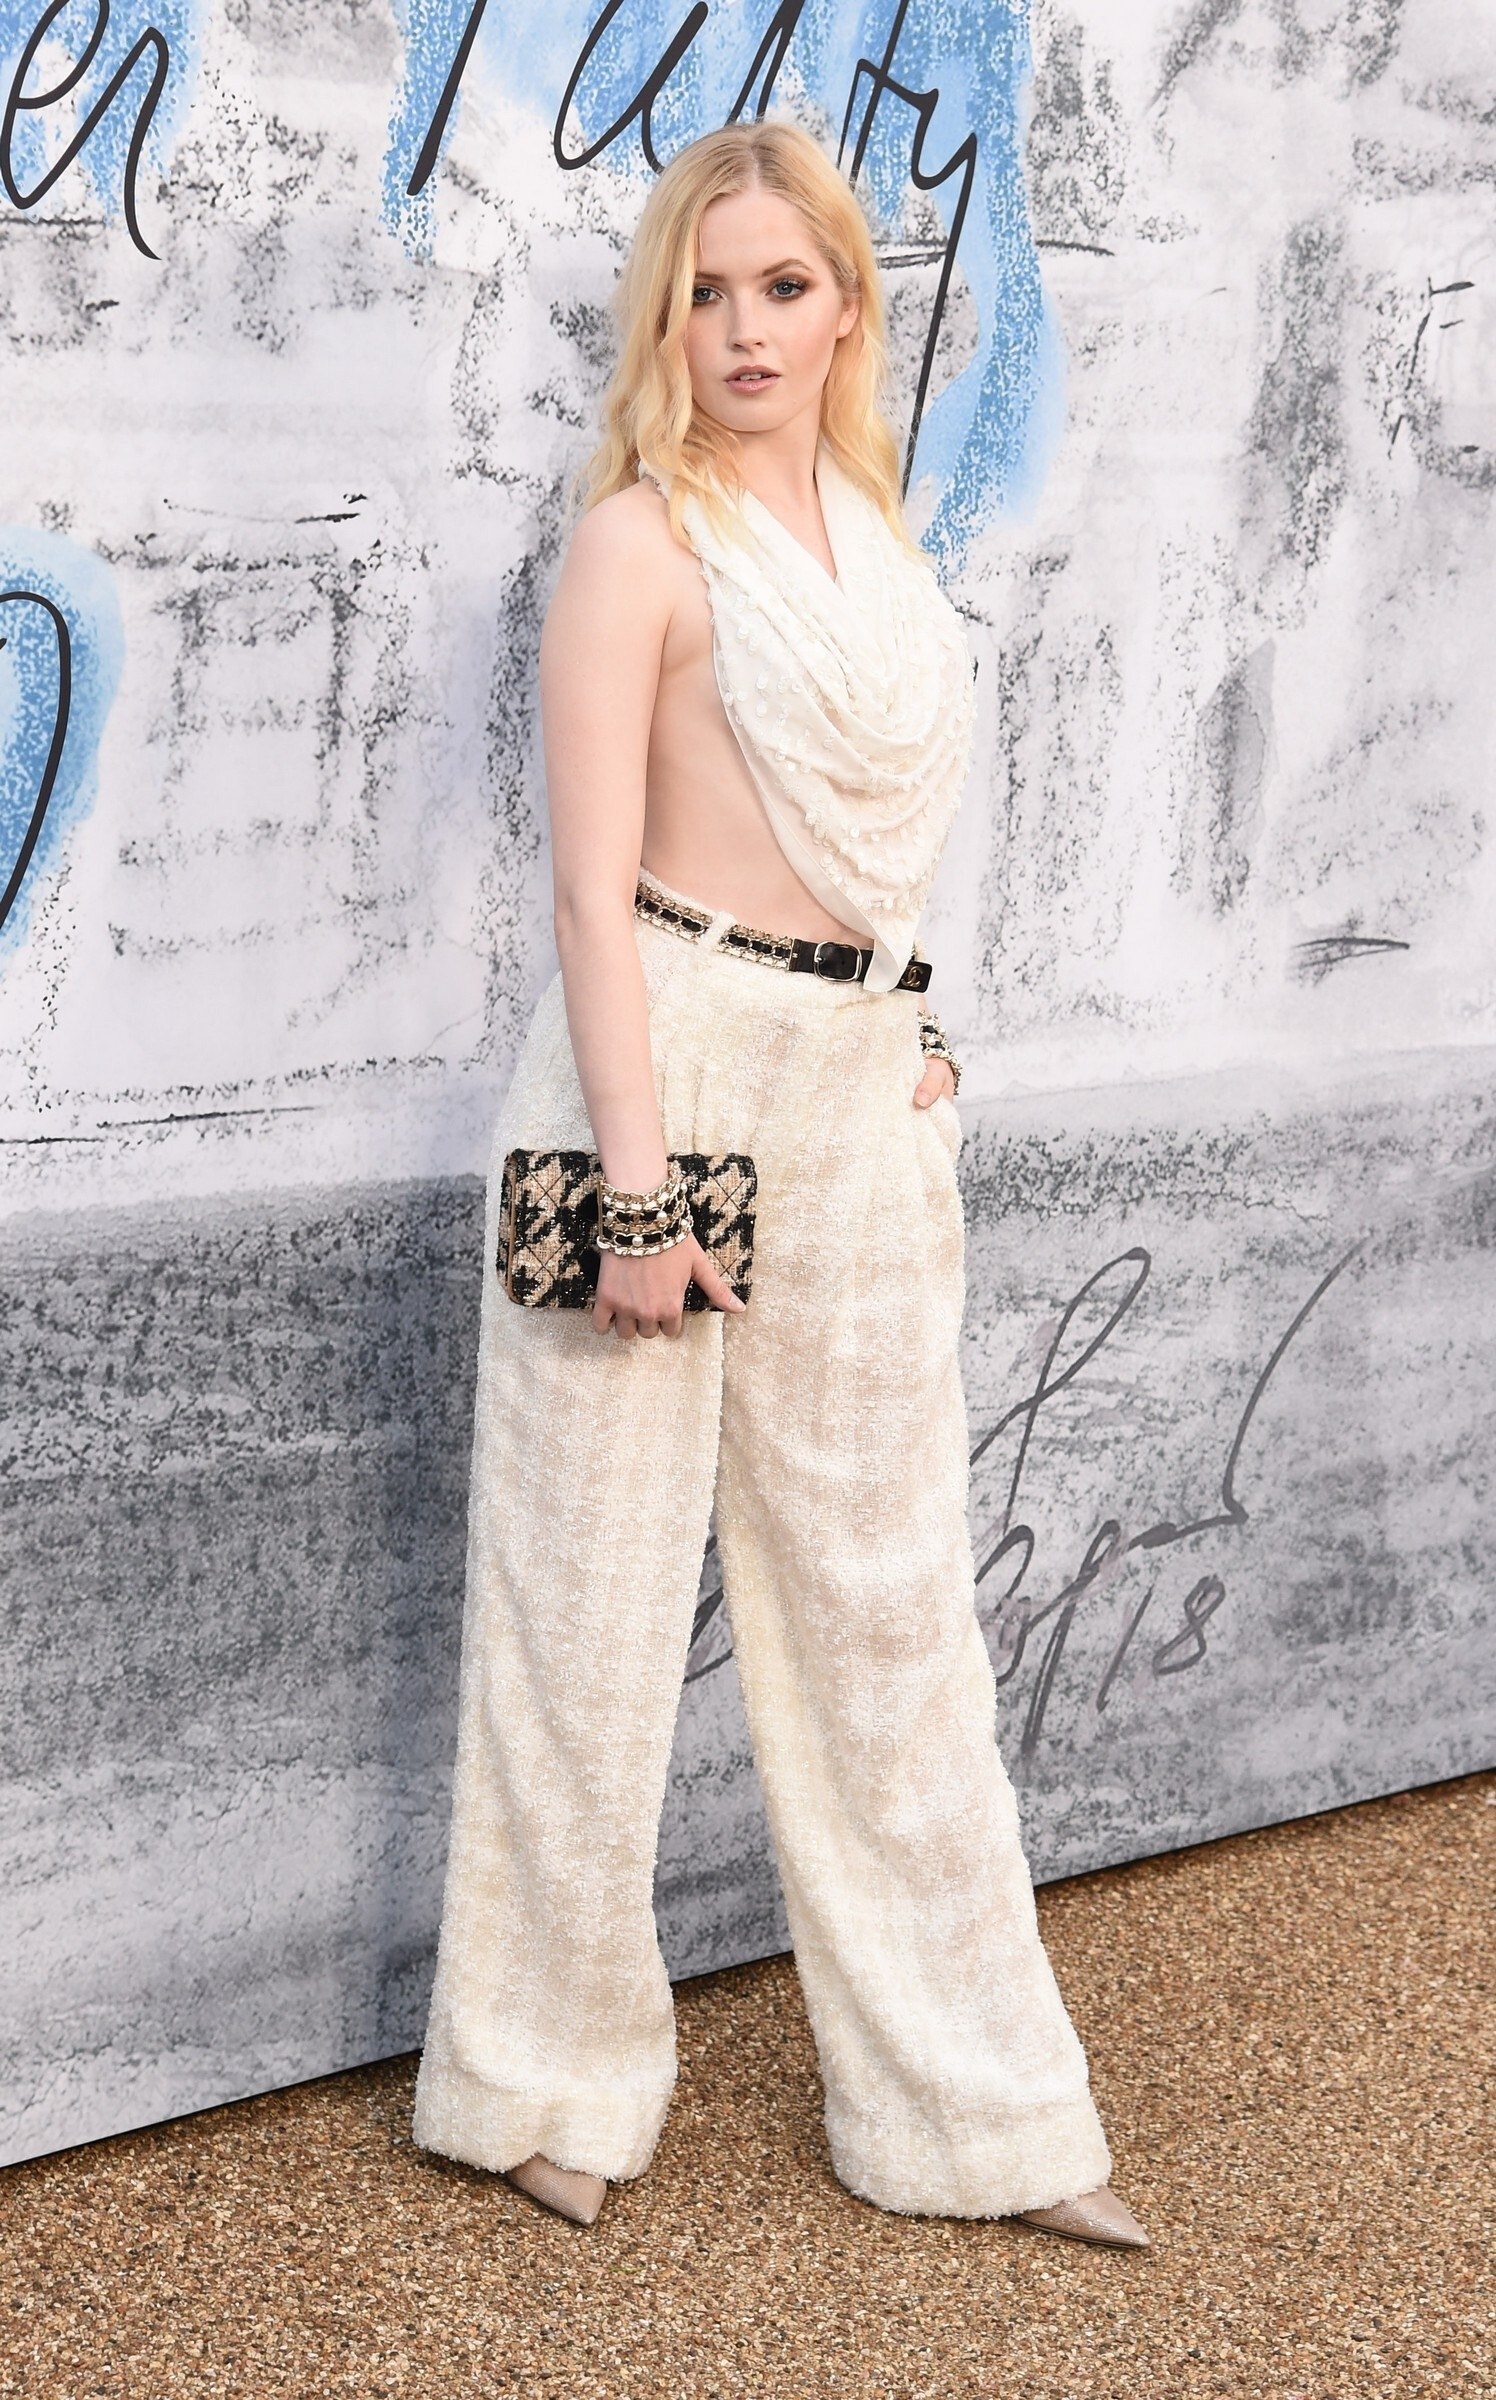 Ellie Bamber At Sarpentive Gallery Summer Party In London